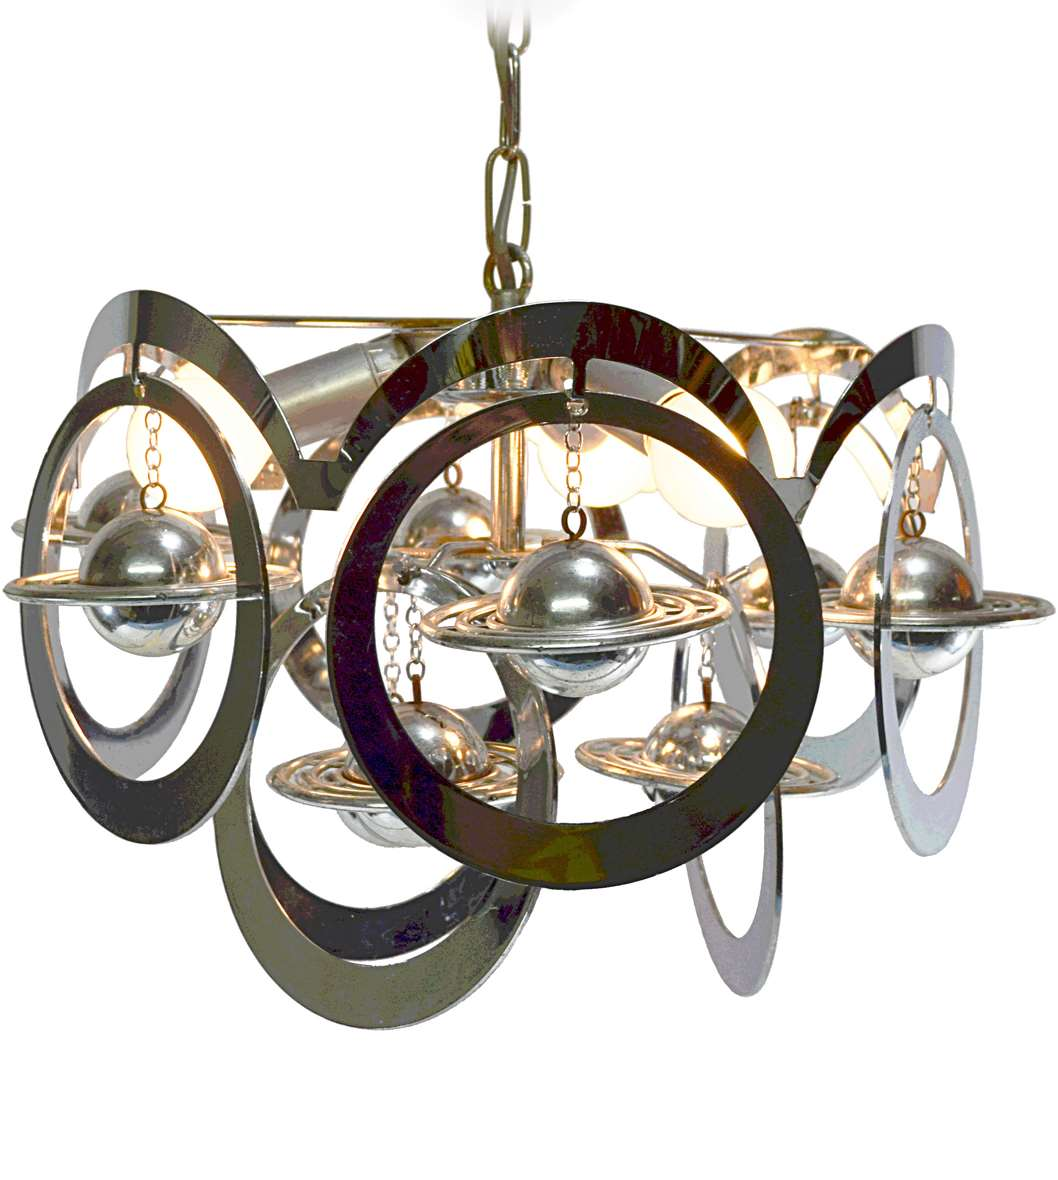 1960s Chrome Rings Saturn Chandelier planets plastic MCM 1970s Space Age circling orbiting